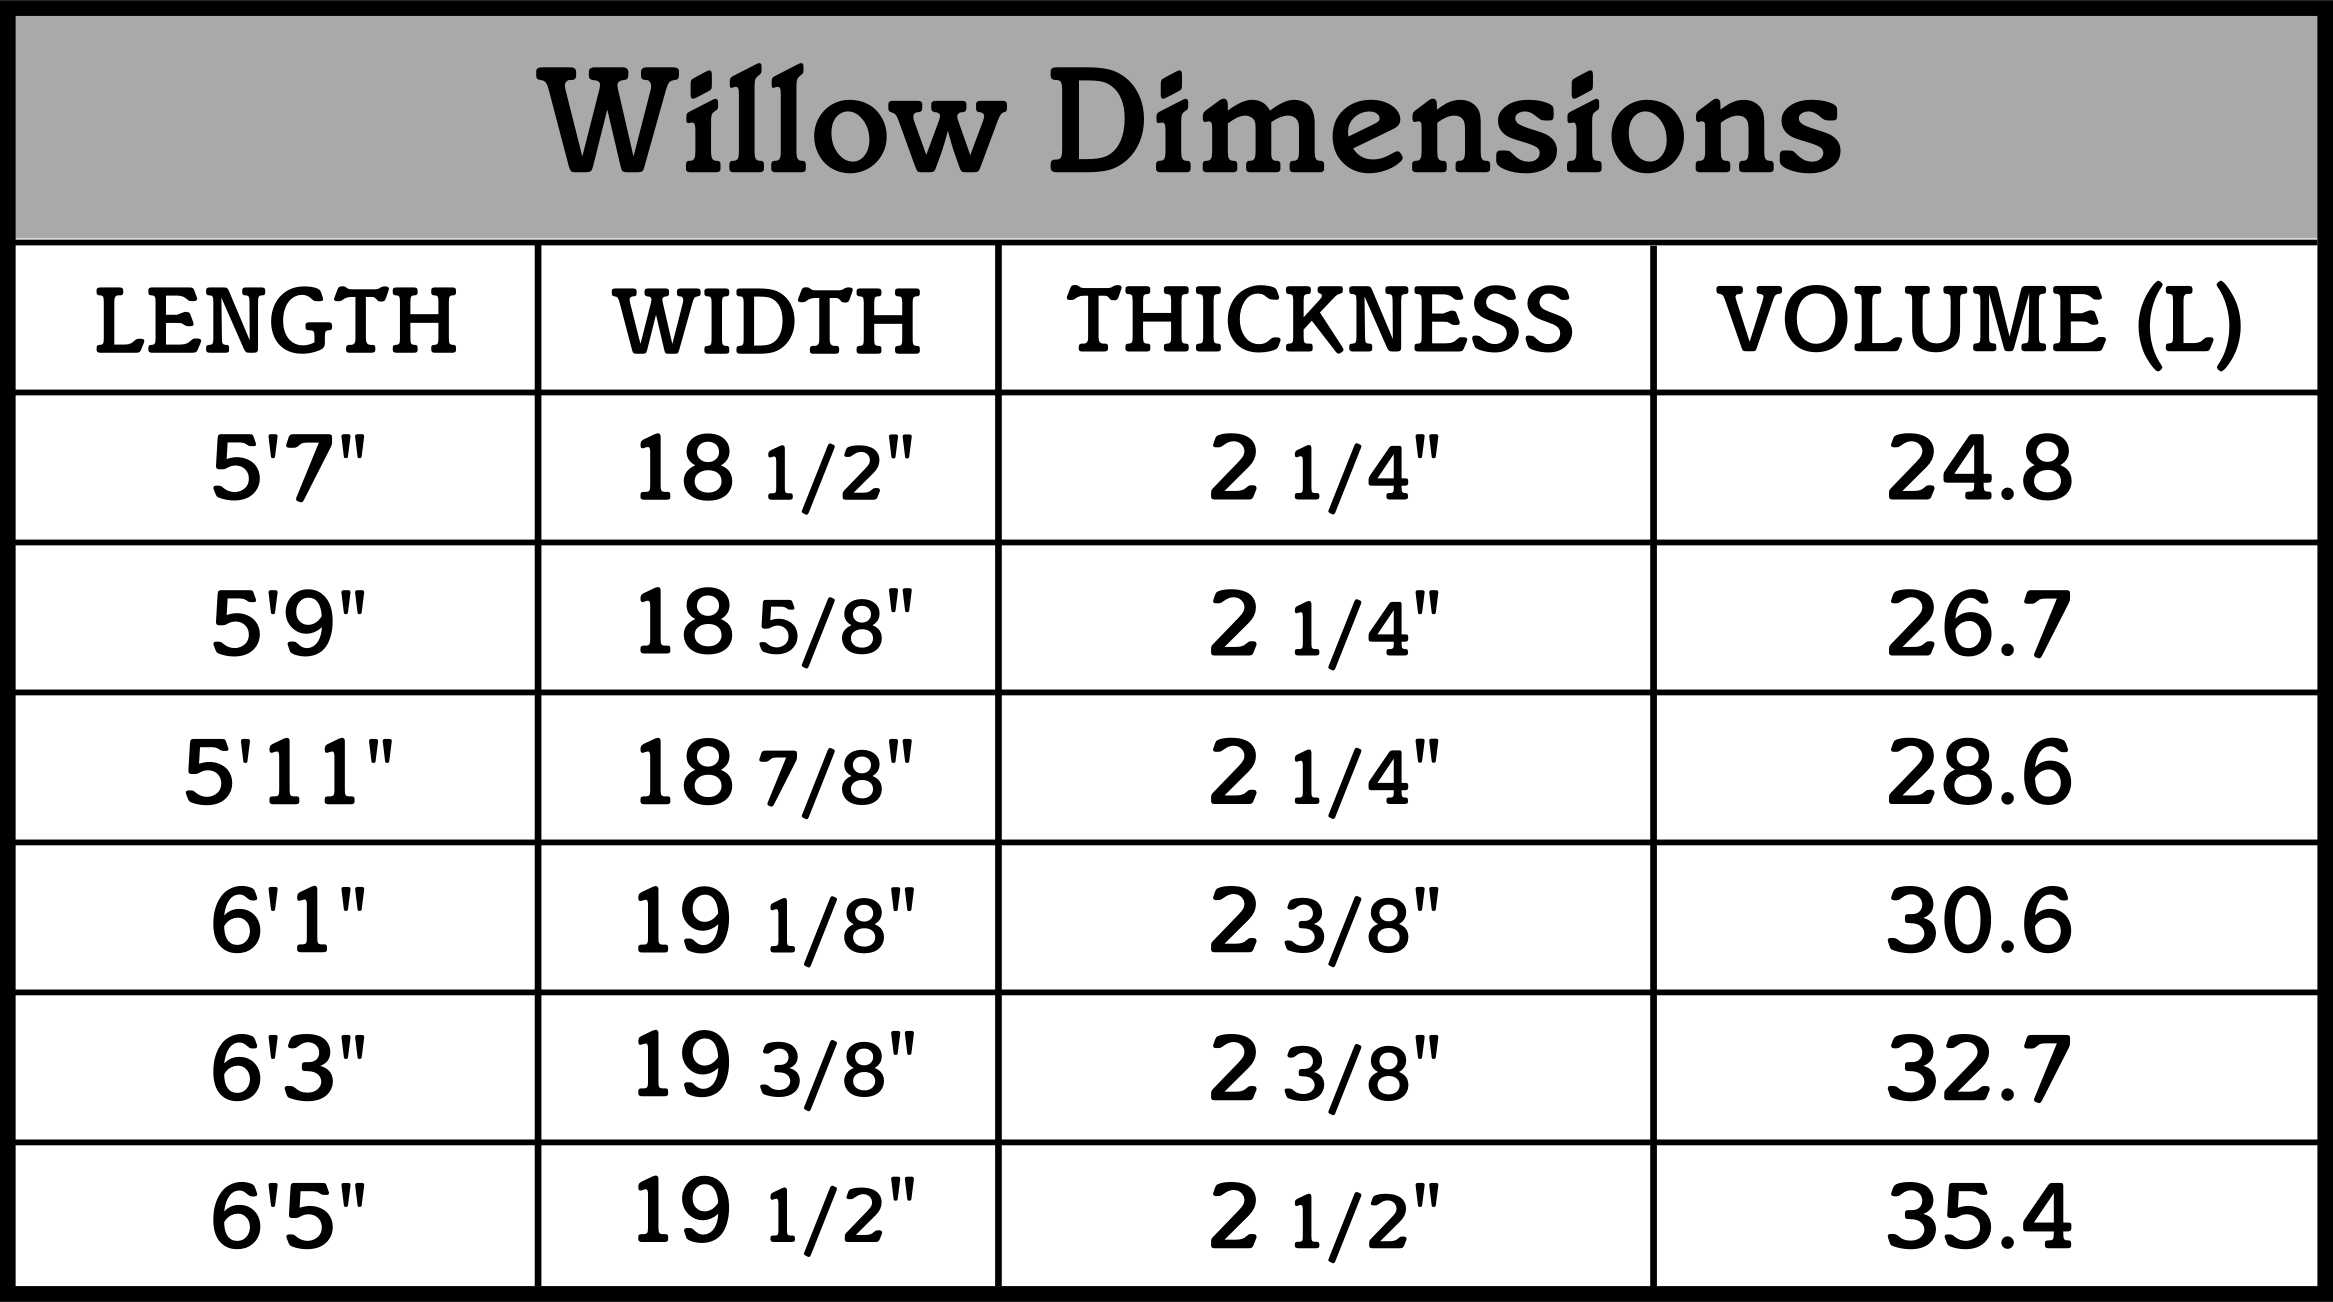 willow dimensions